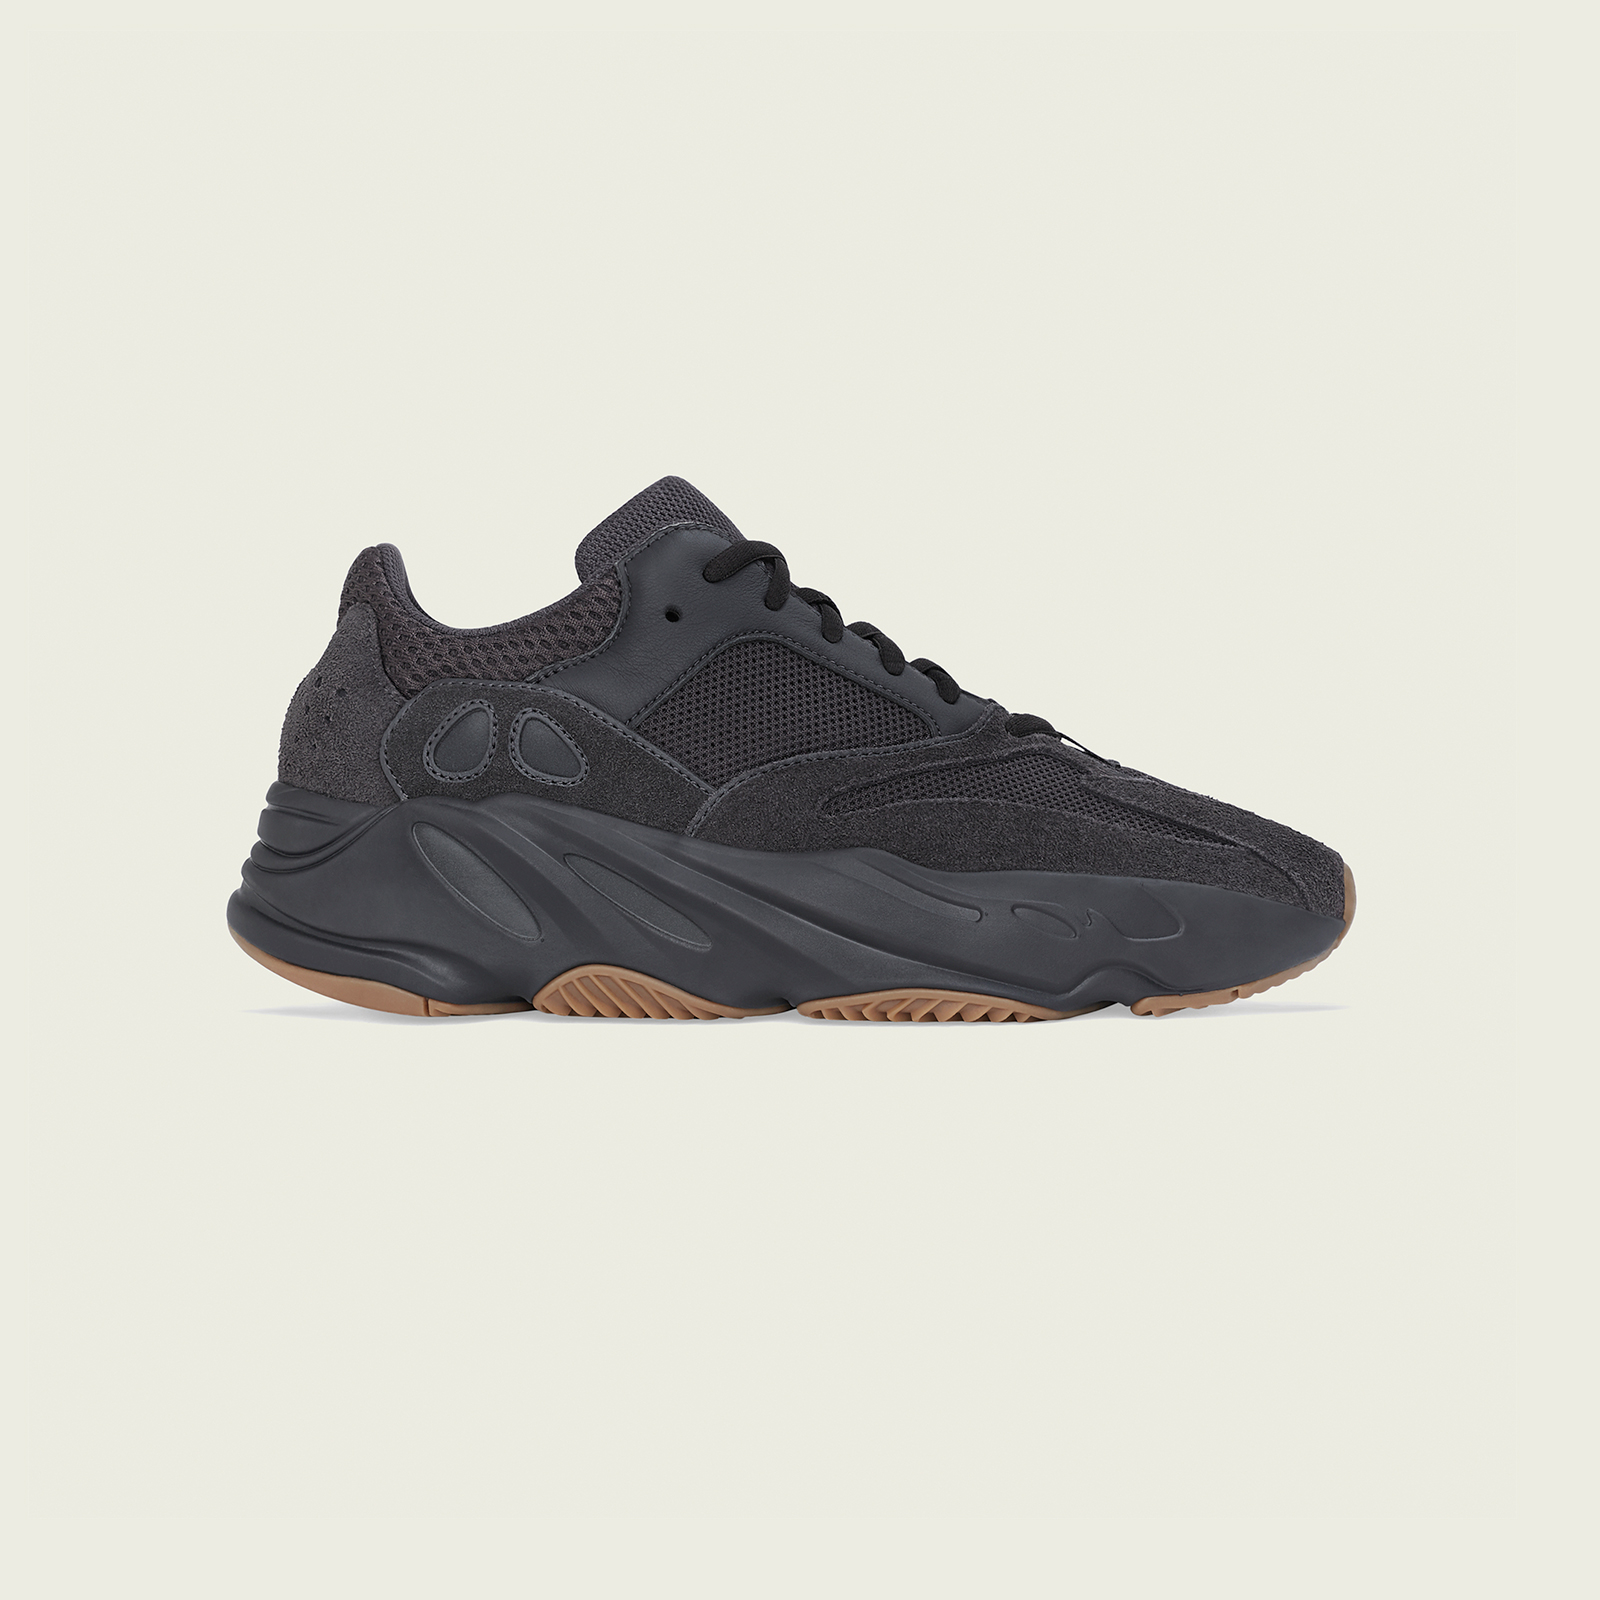 separation shoes 73c55 6fda5 adidas Yeezy Boost 700 - Fv5304 - Sneakersnstuff | sneakers ...